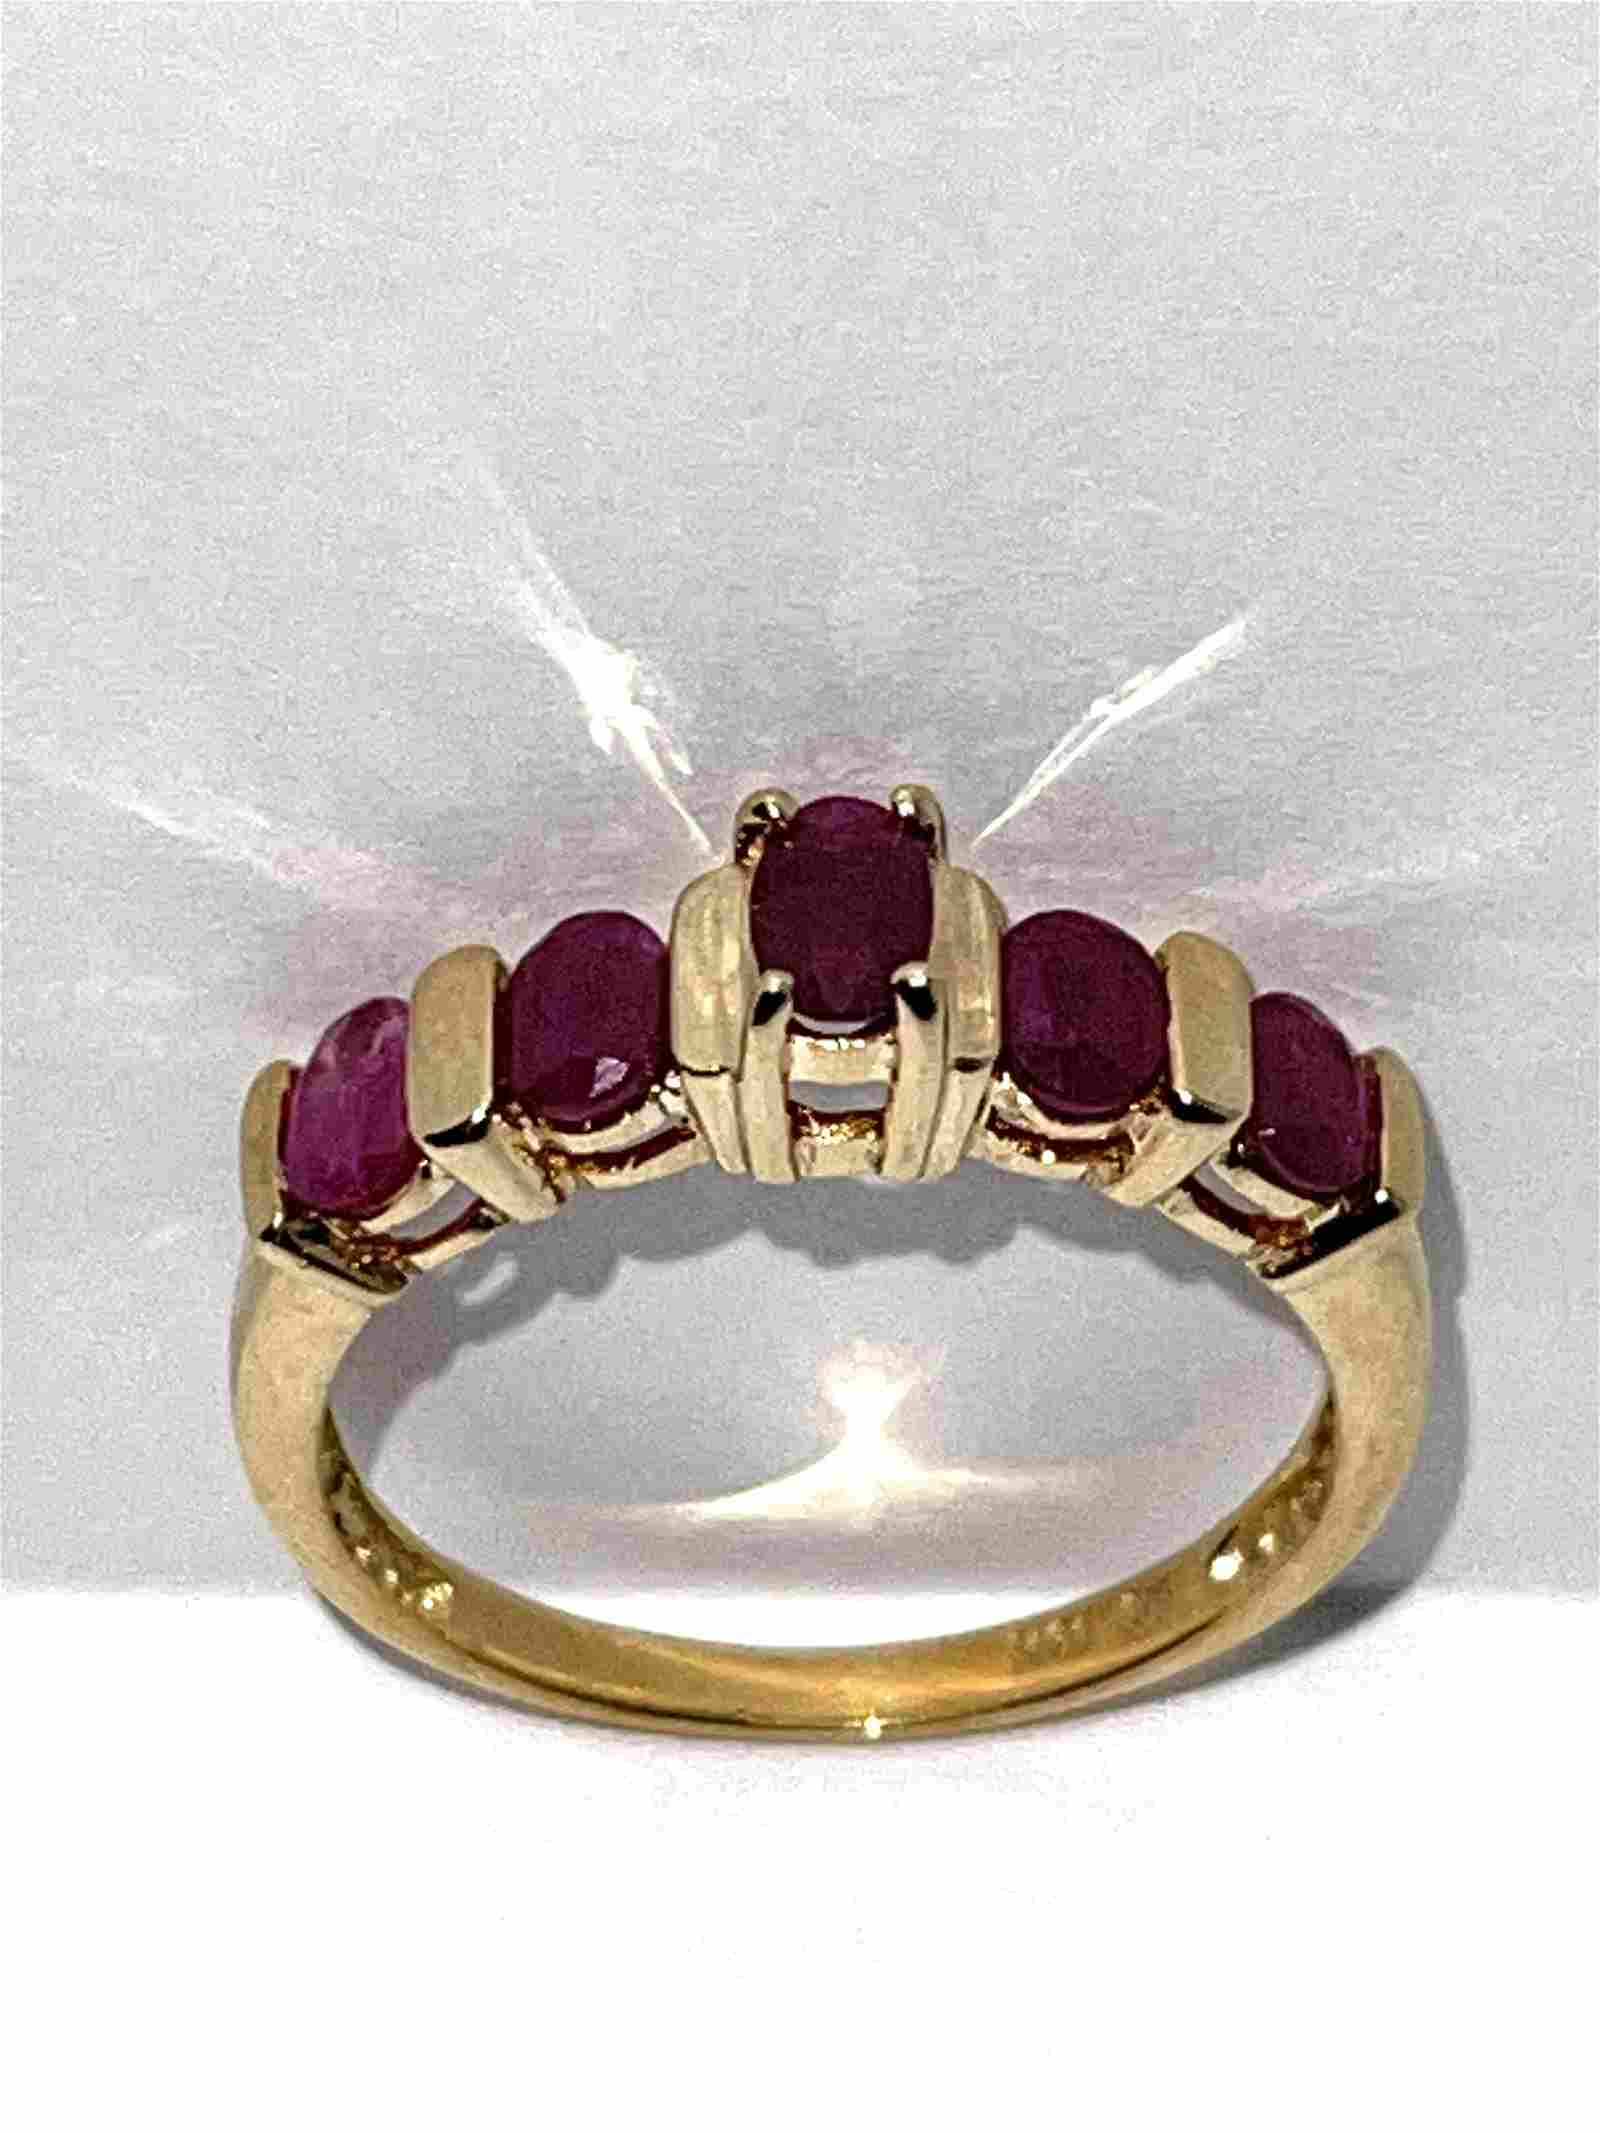 10K GOLD 1.0 TCW OVAL RUBY COCKTAIL RING SZ 7